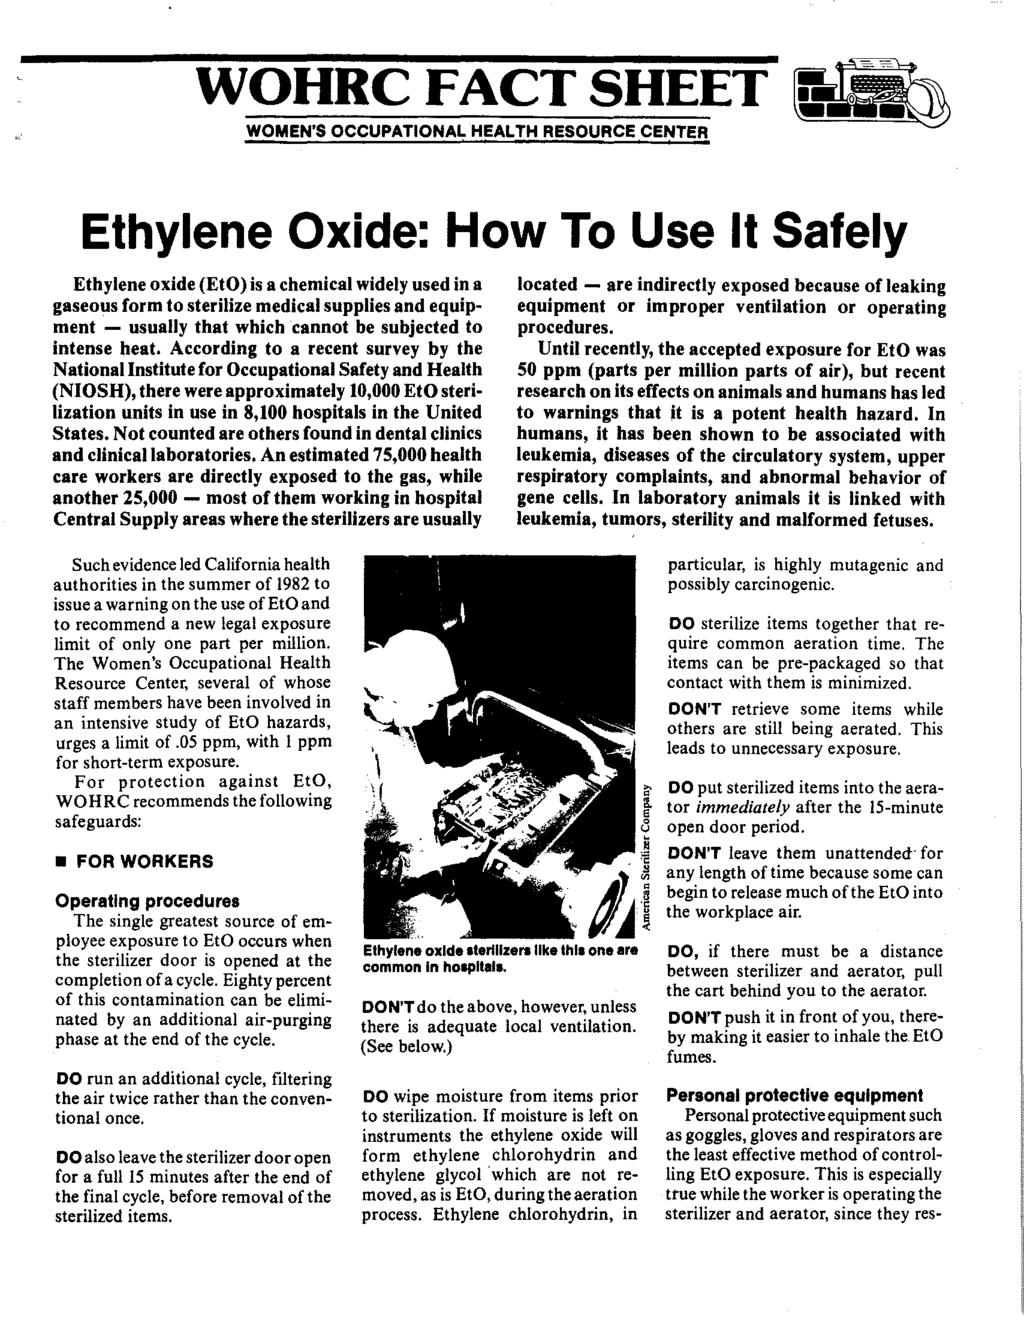 WOHRC FACT SHEET WOMEN'S OCCUPATIONAL HEALTH RESOURCE CENTER Ethylene Oxide: How To Use It Safely Ethylene oxide (EtO) is a chemical widely used in a gaseous form to sterilize medical supplies and